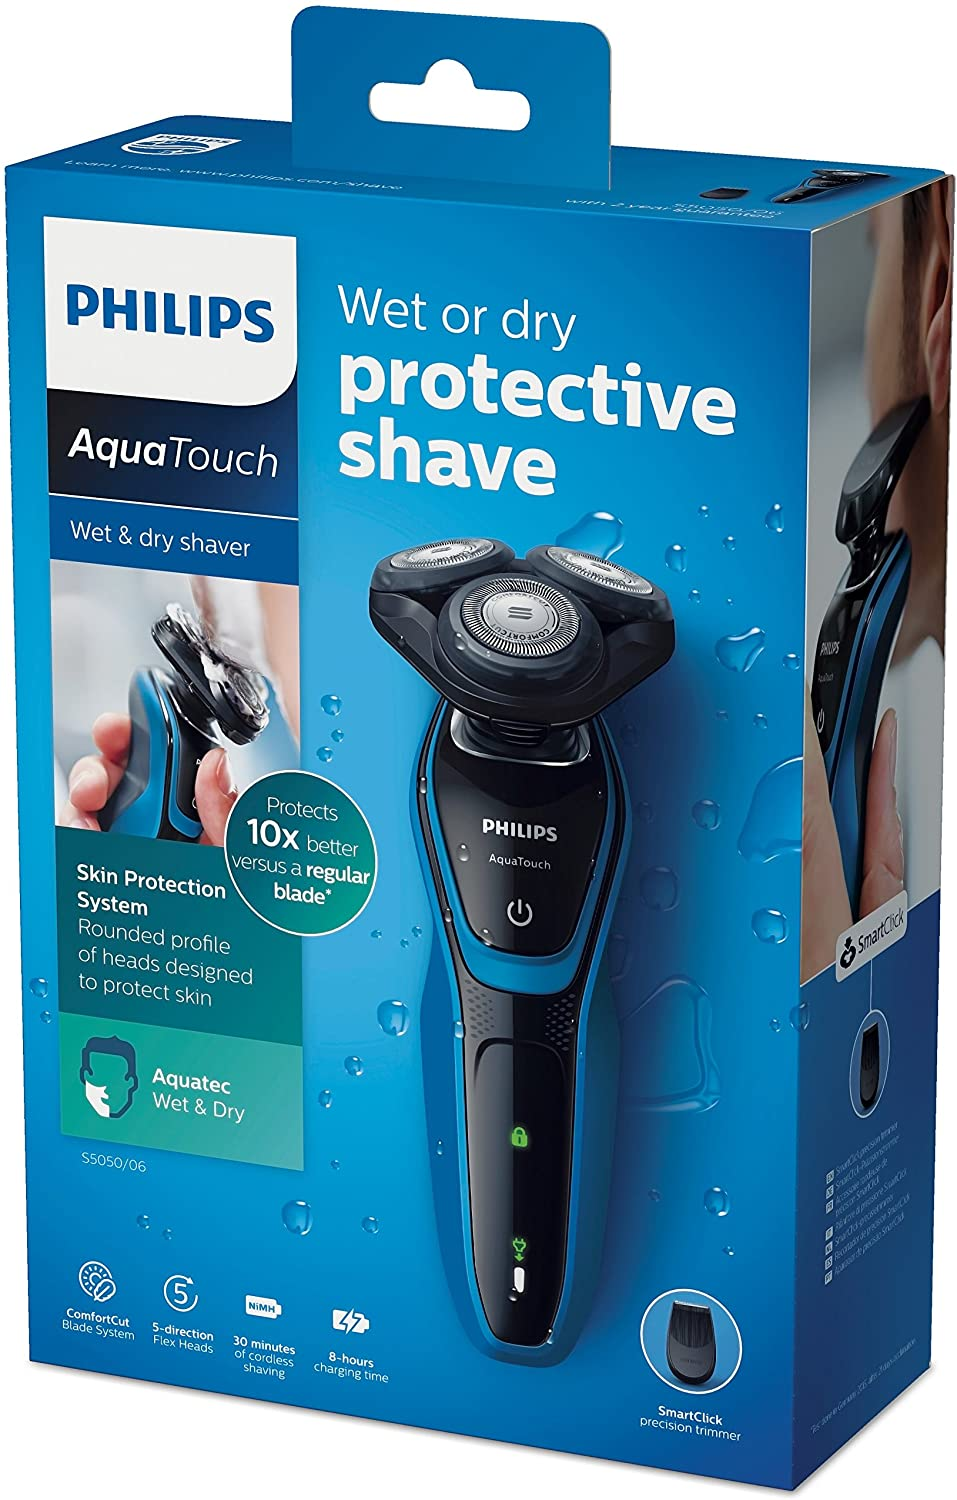 ORGINAL Philips AquaTouch S5050 Electric Shaver for Wet Dry Shaving Men's Shaver S5050 / 06 Waterproof Precision Trimmer enlarge